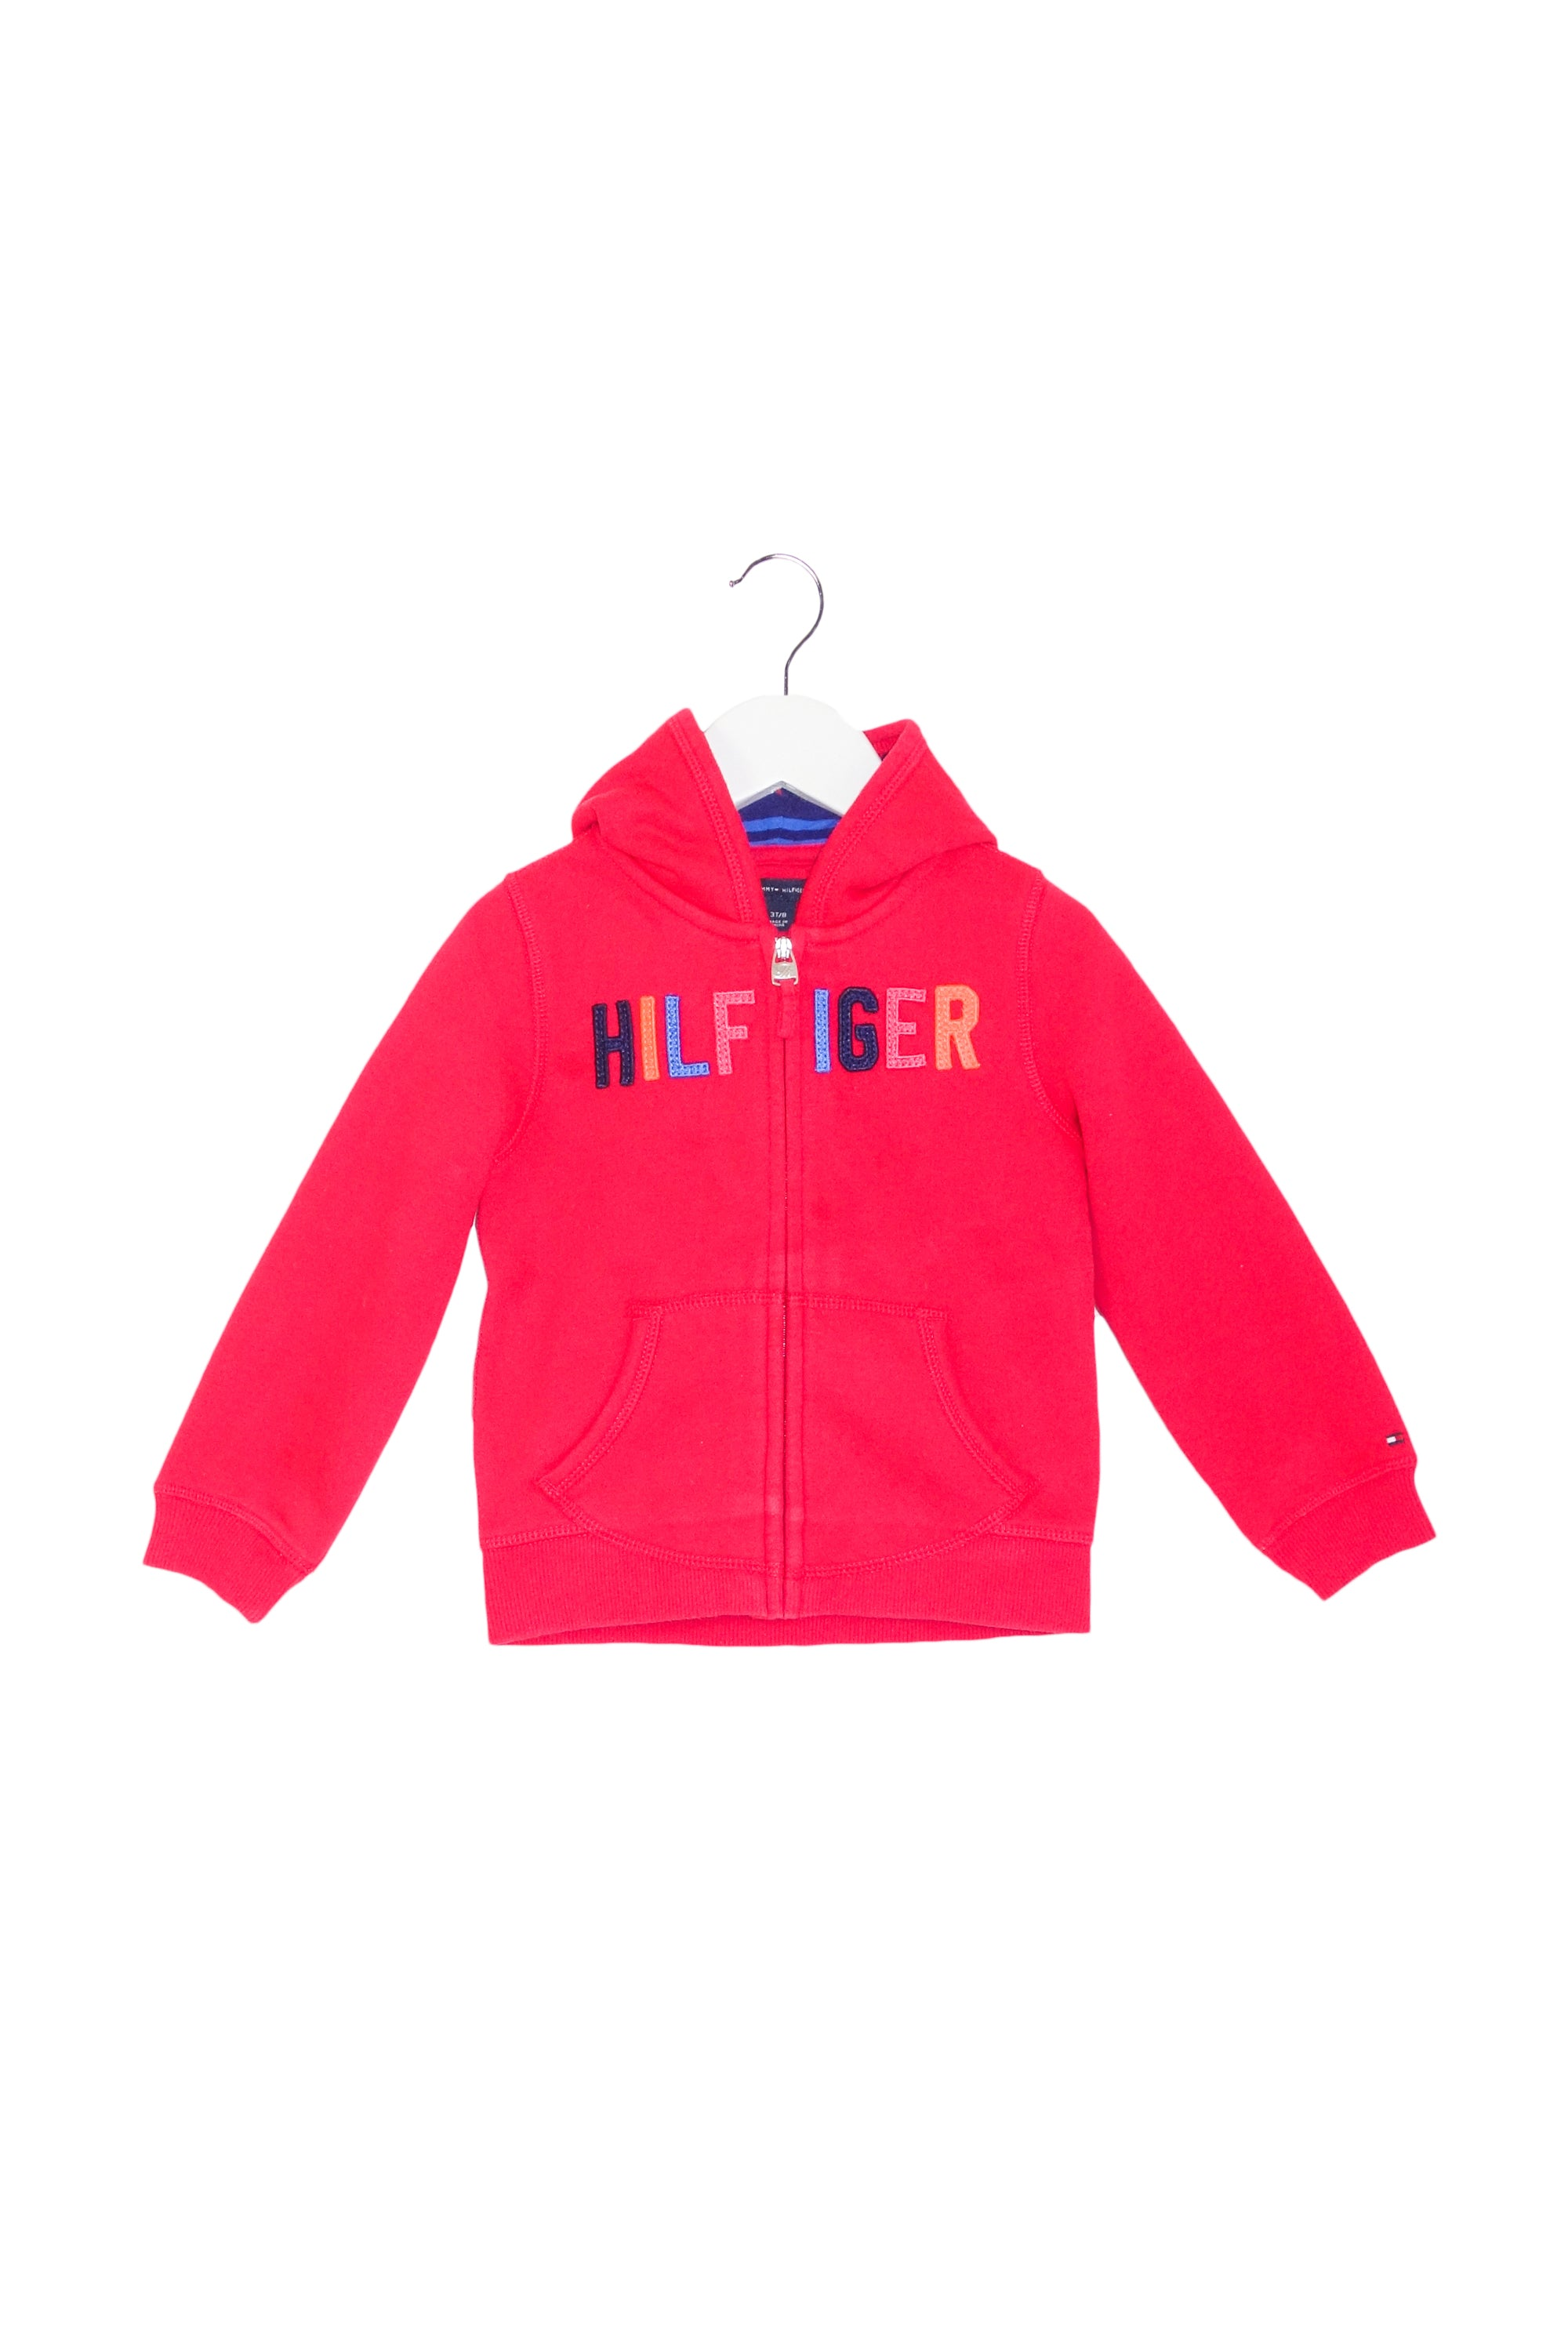 10013575 Tommy Hilfiger Kids ~ Sweater 3T at Retykle